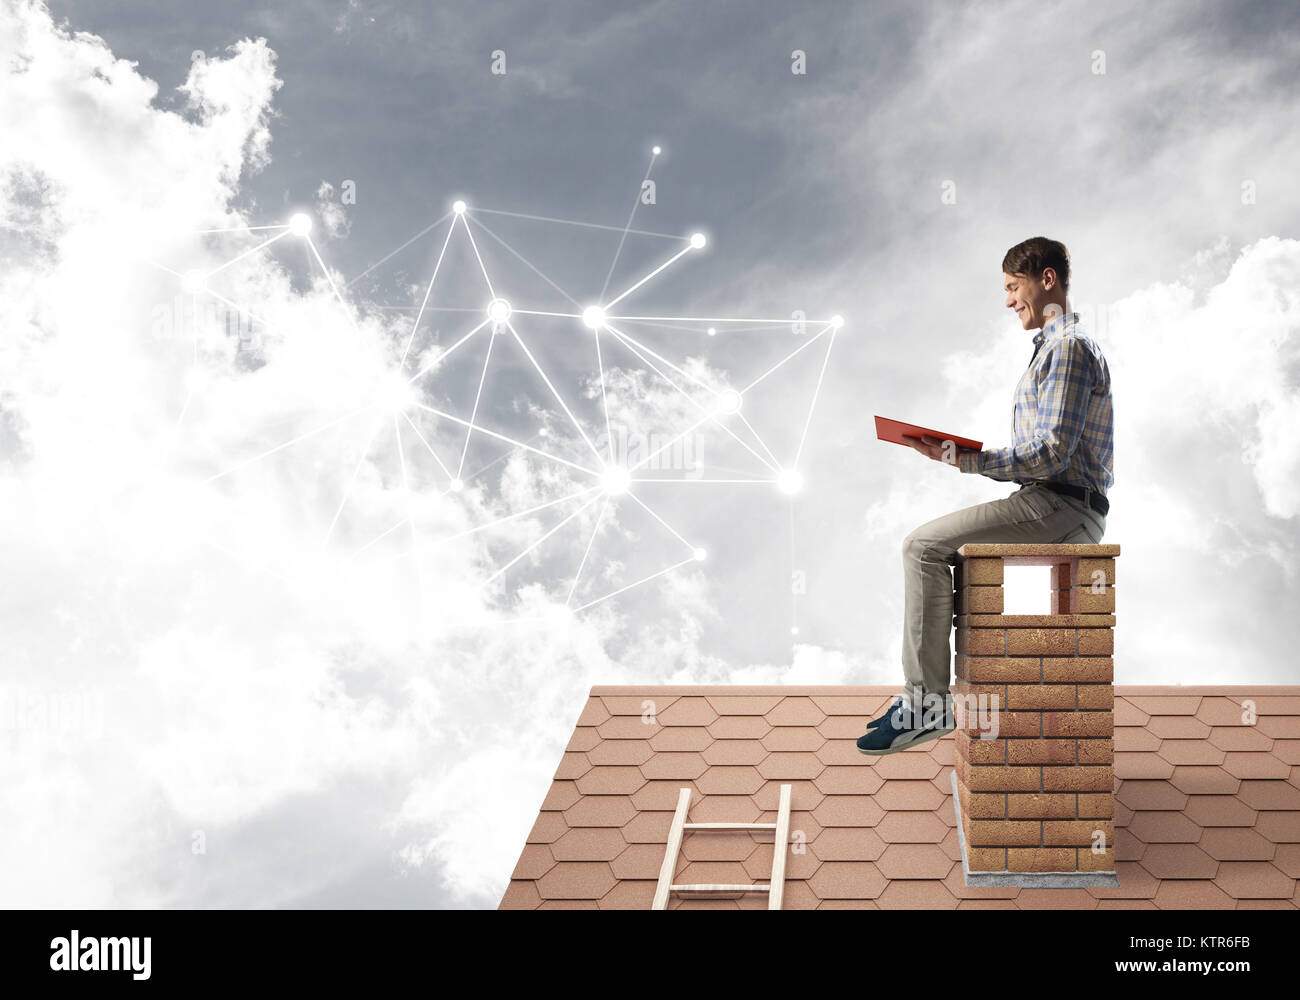 Man on brick roof reading book and concept of social connection - Stock Image